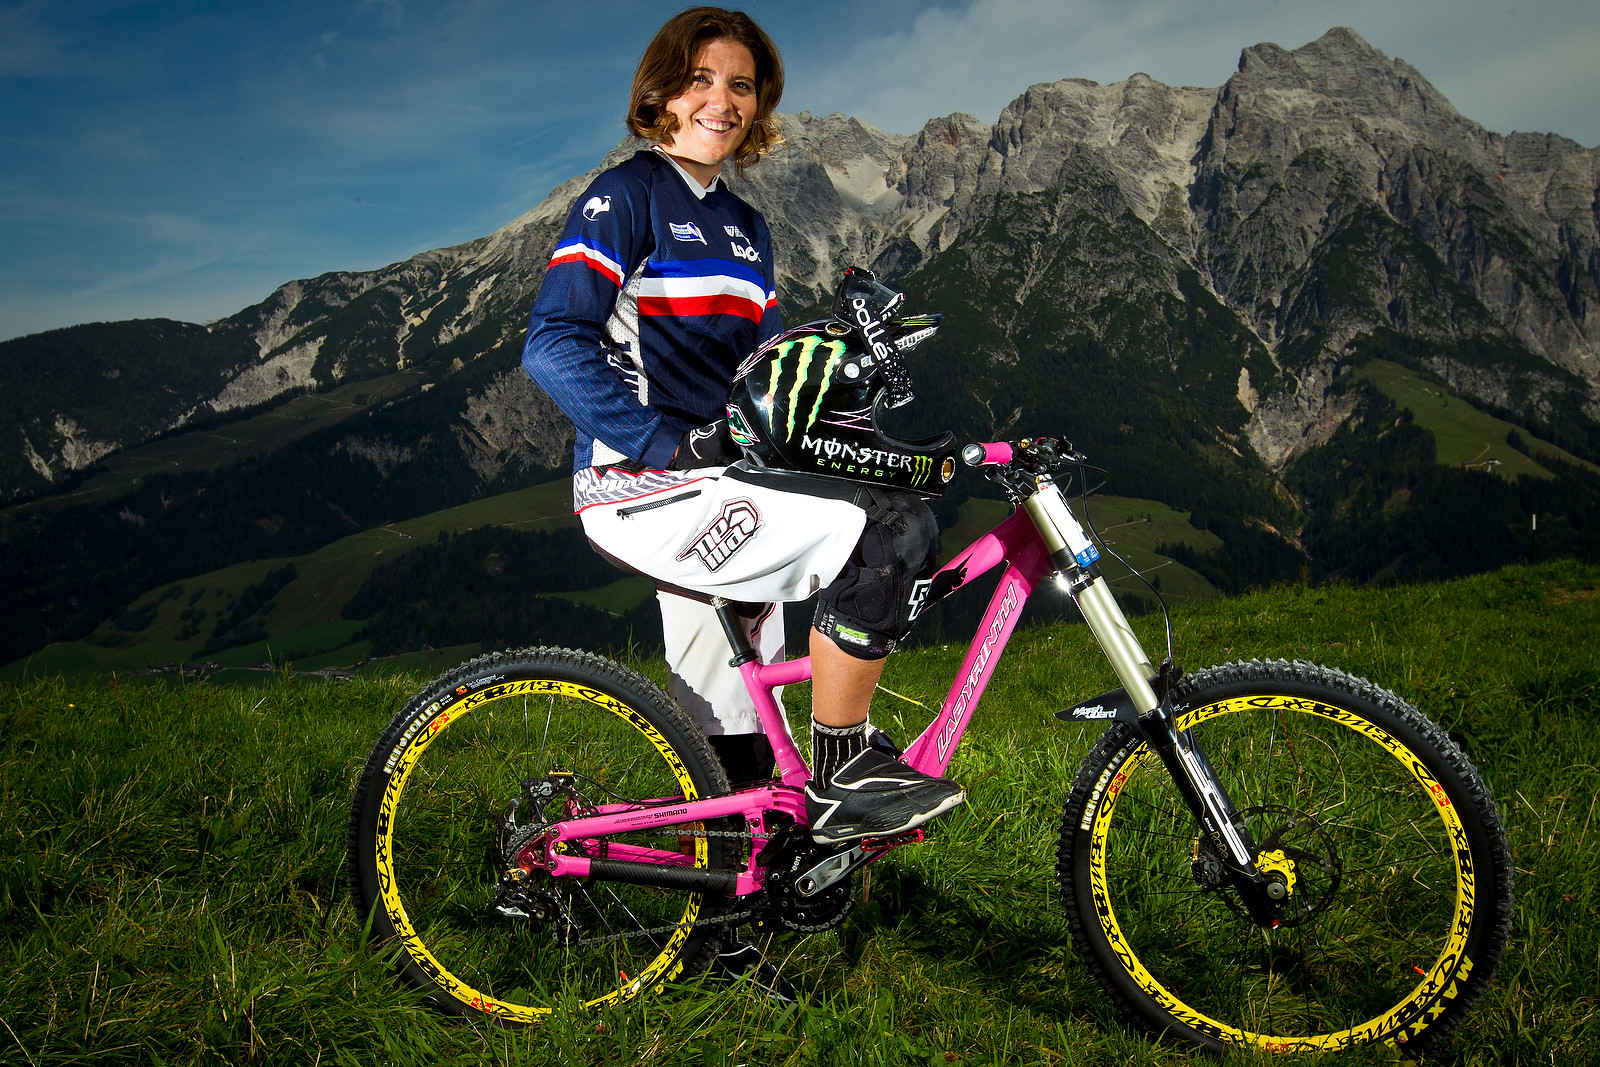 Sabrina Jonnier with her Labyrinth - World Championships Riders and Bikes - Mountain Biking Pictures - Vital MTB